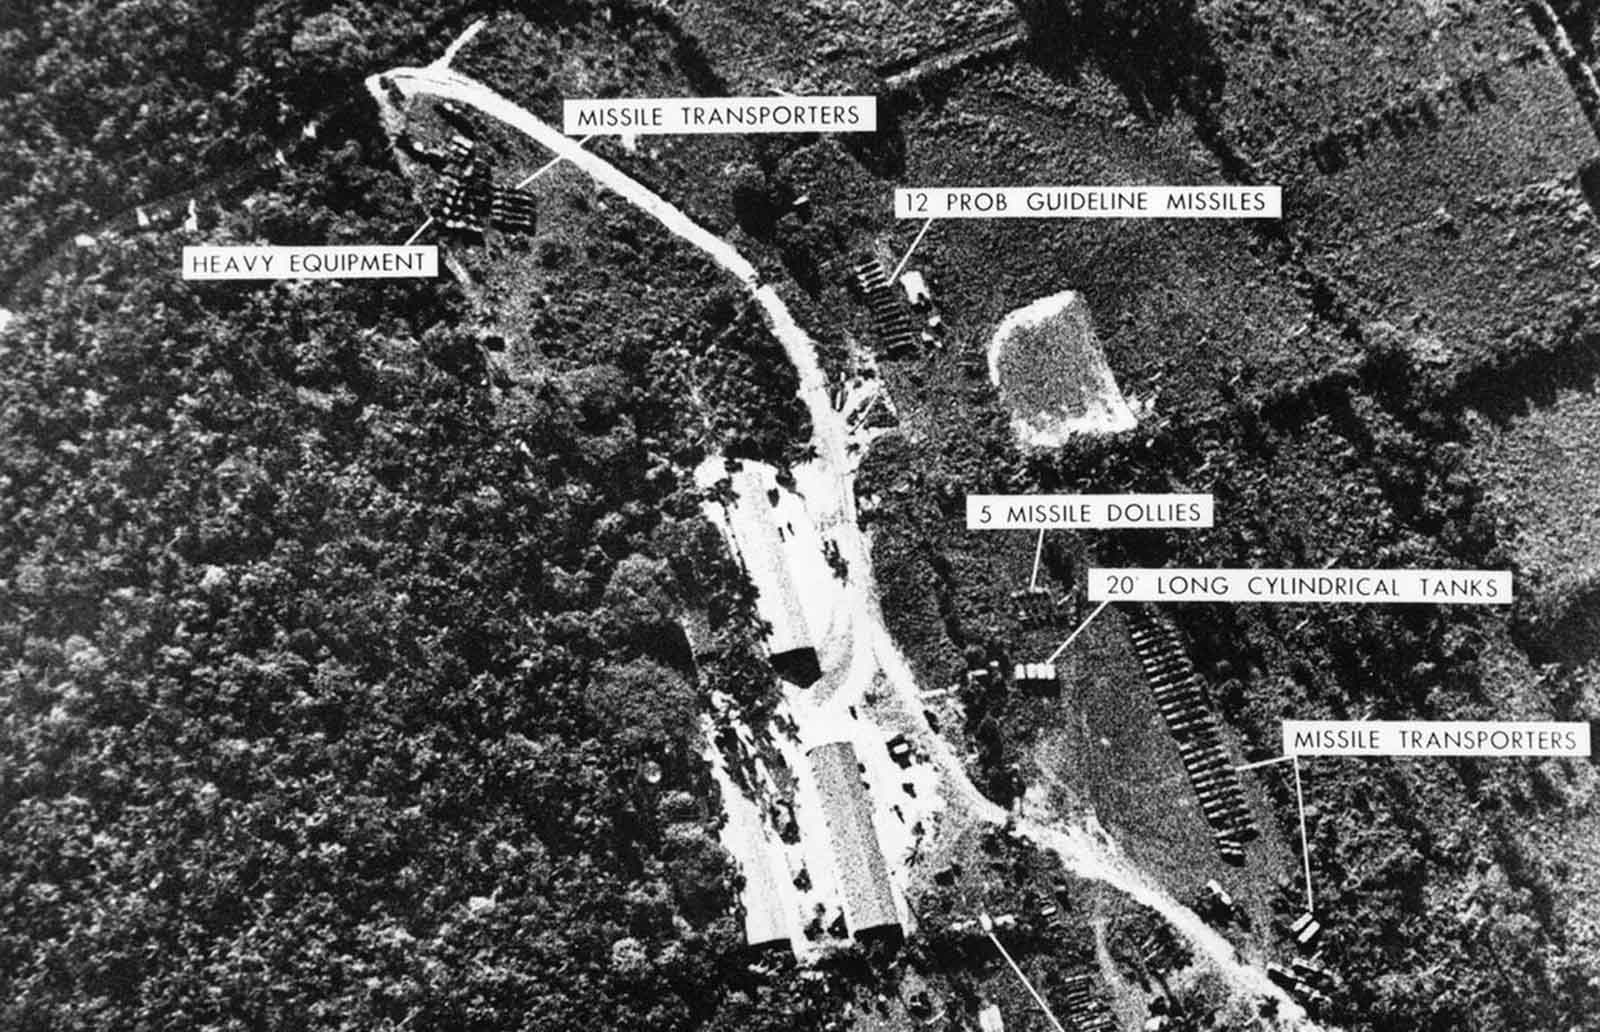 A photograph of a ballistic missile base in Cuba, used as evidence with which U.S. President John F. Kennedy ordered a naval blockade of Cuba during the Cuban missile crisis, on October 24, 1962.